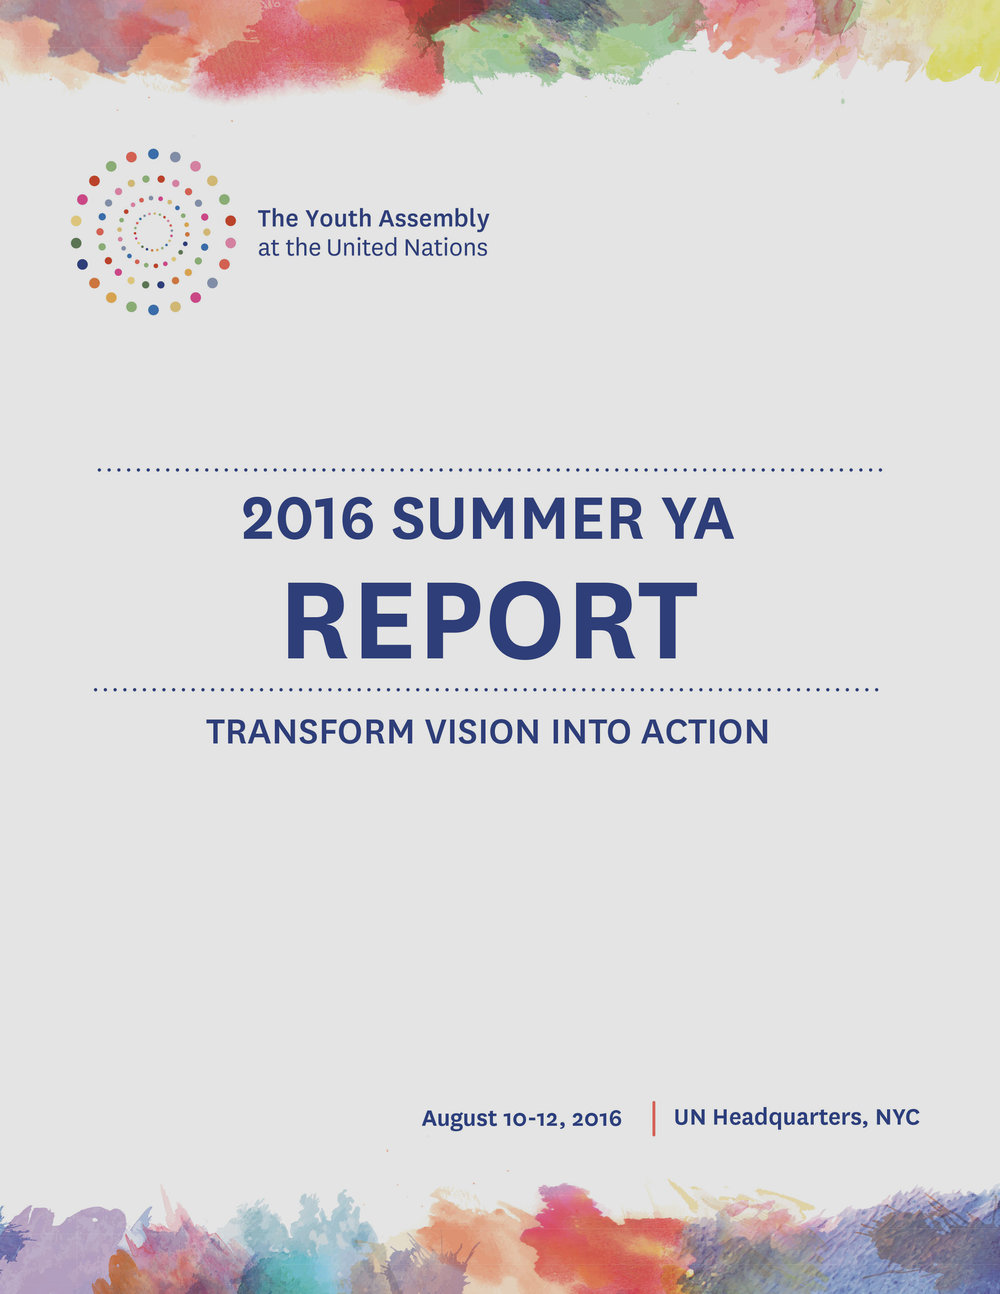 2016 Summer YA Report Cover.jpg